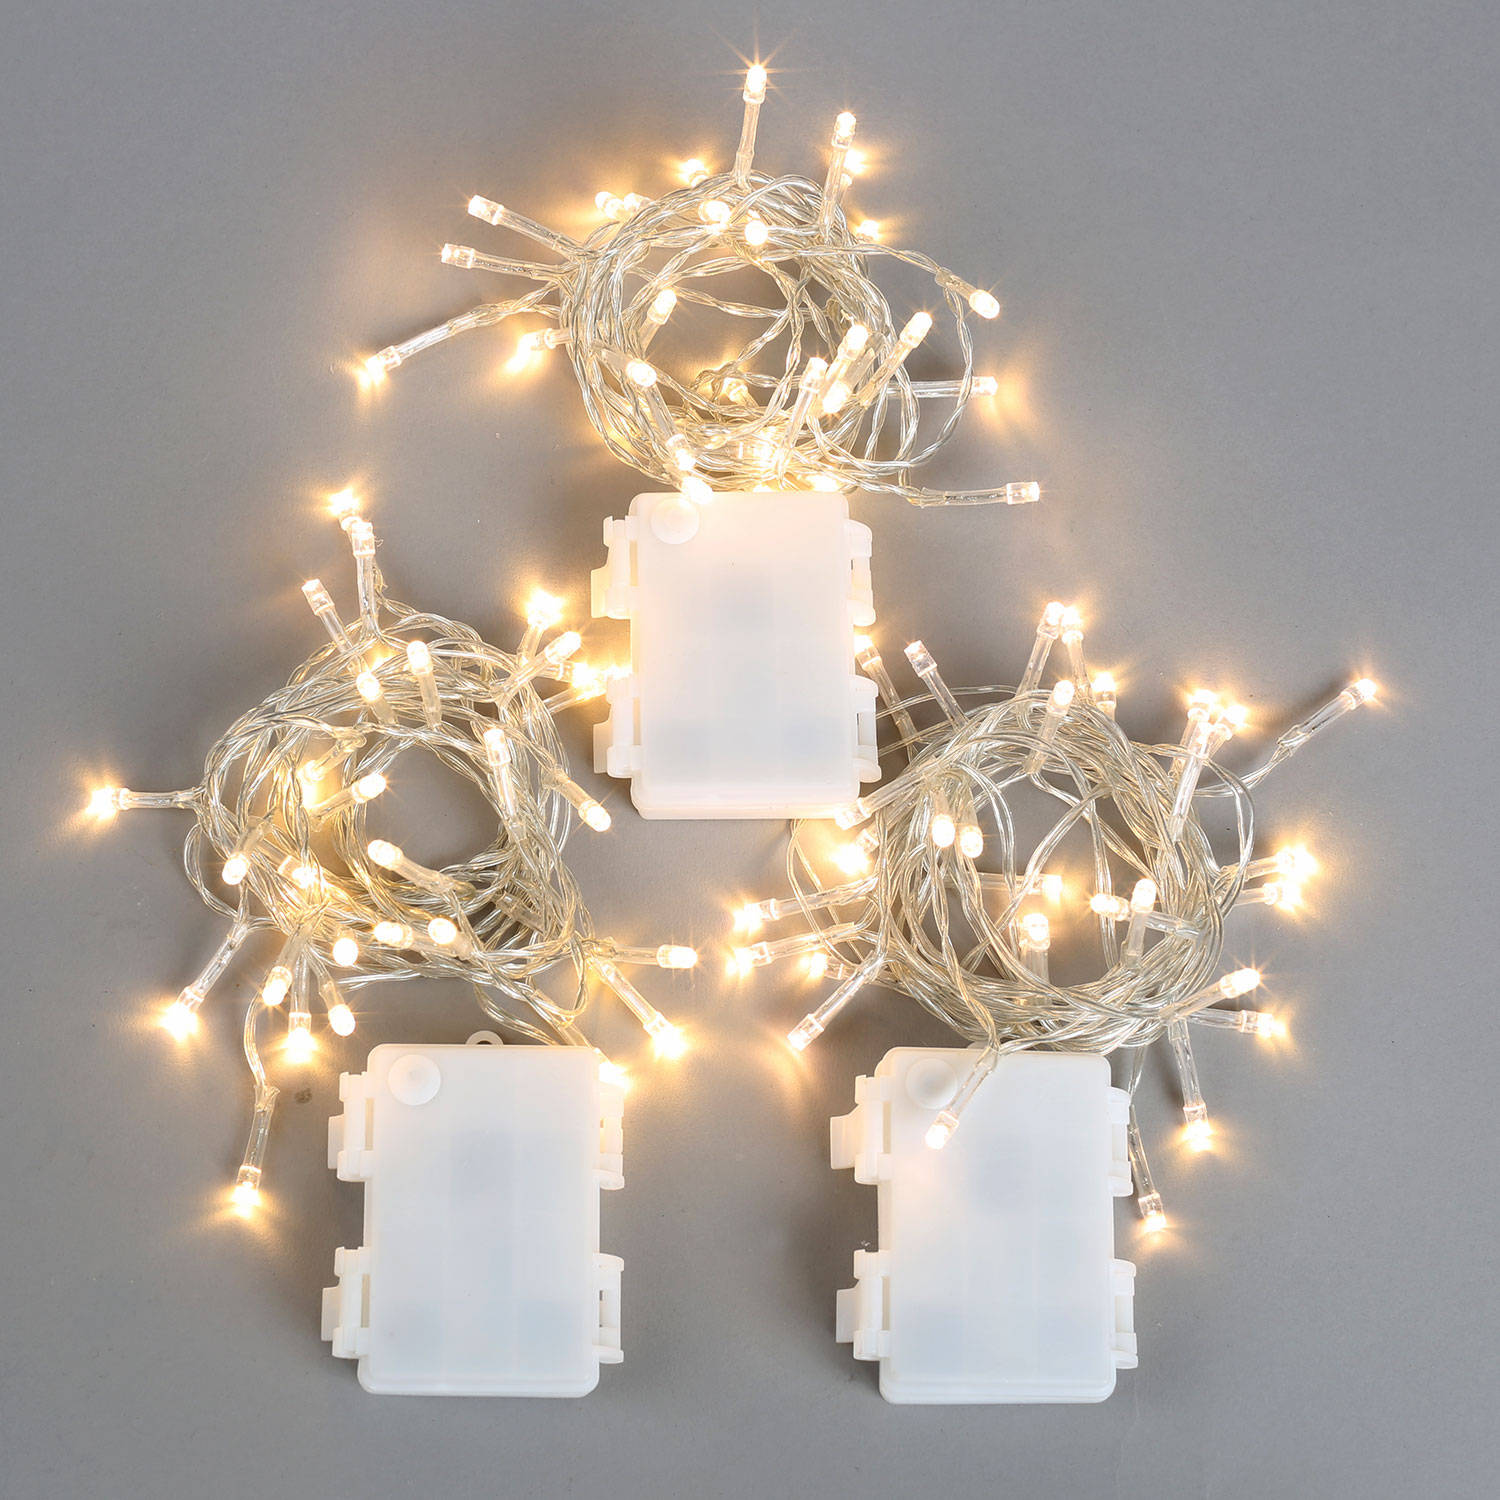 Accents White Led String Lights Battery Operated : Lights.com Lit Decor String Lights Christmas Lights Extra Bright Warm White 30 LED ...